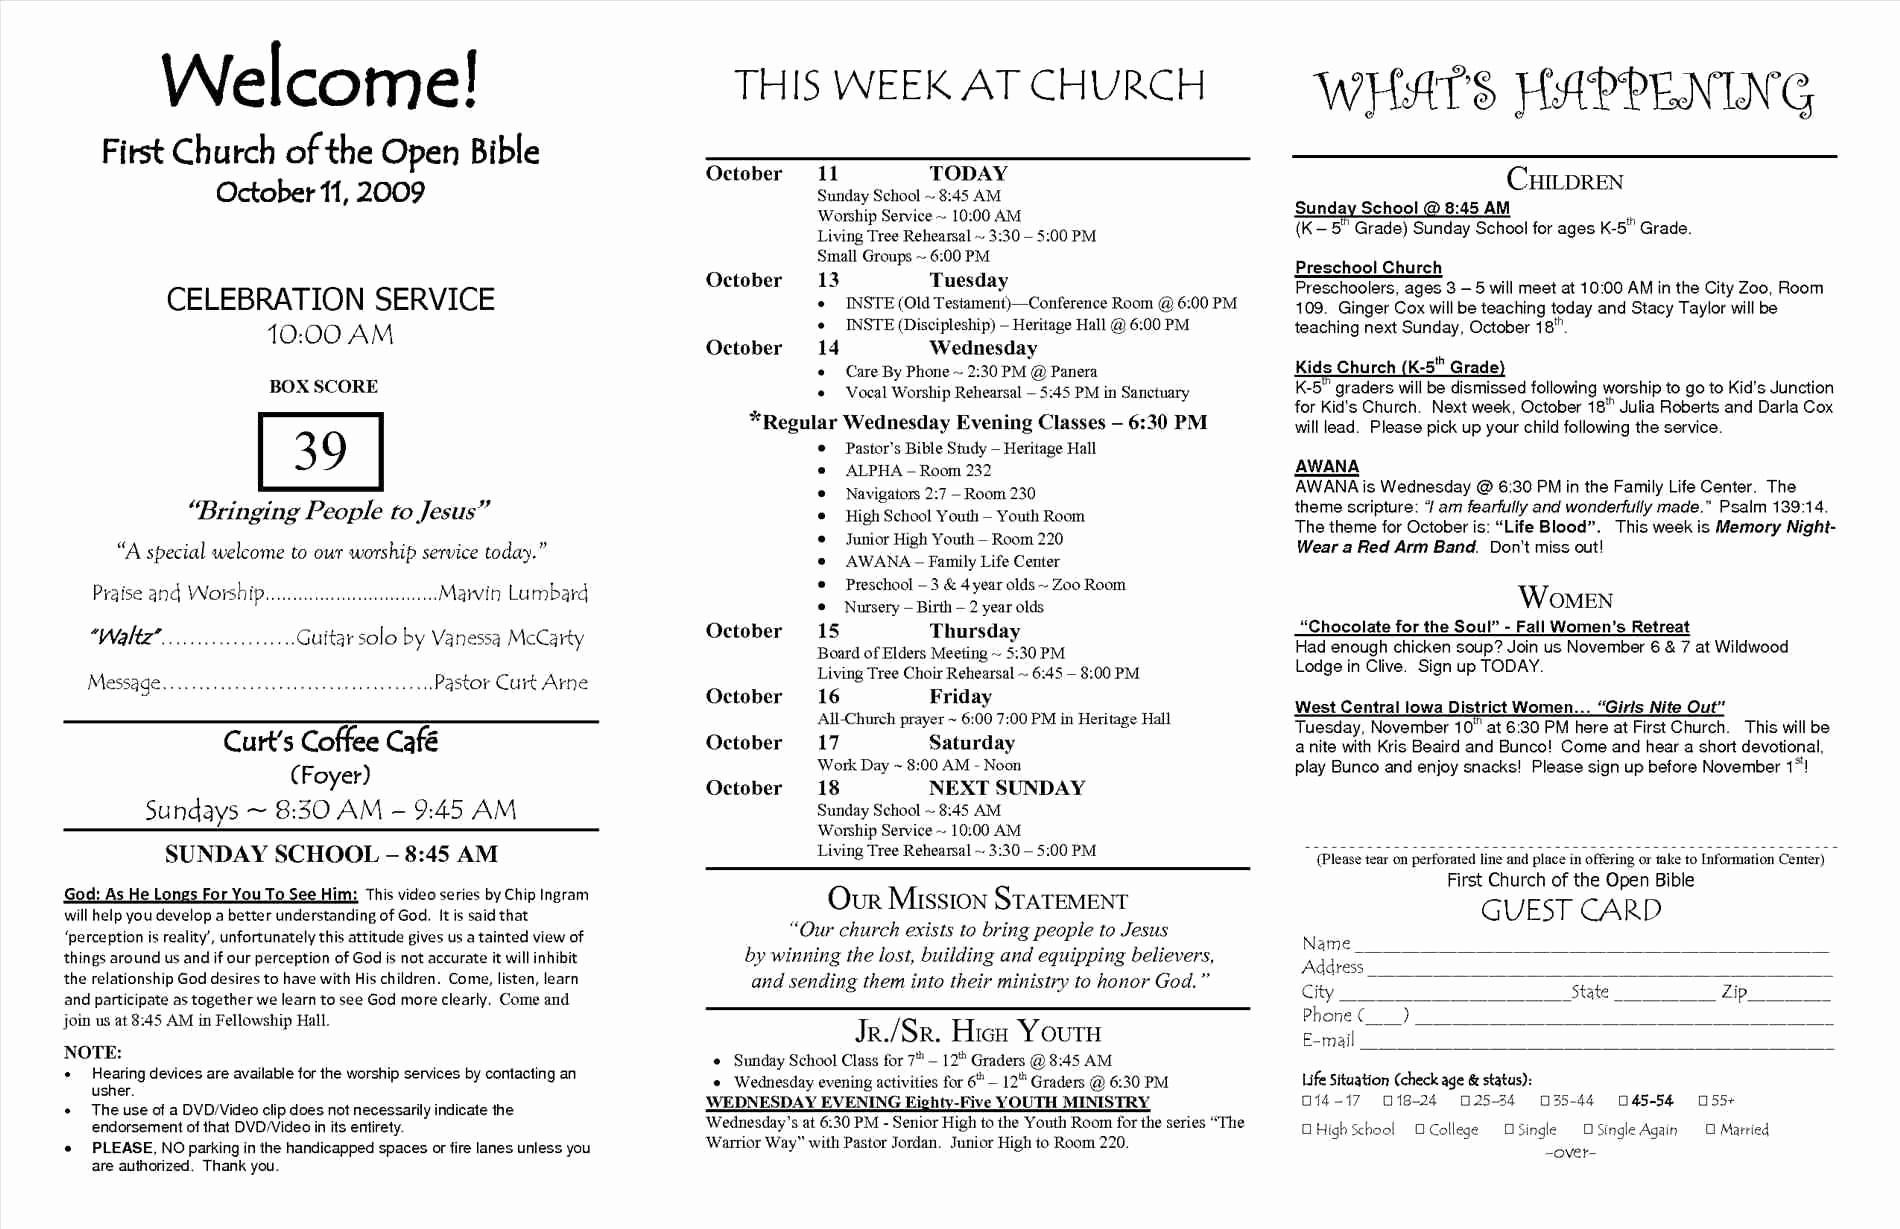 014 Church Program Templates Free Download Awesome Enchanting - Free Printable Church Program Templates